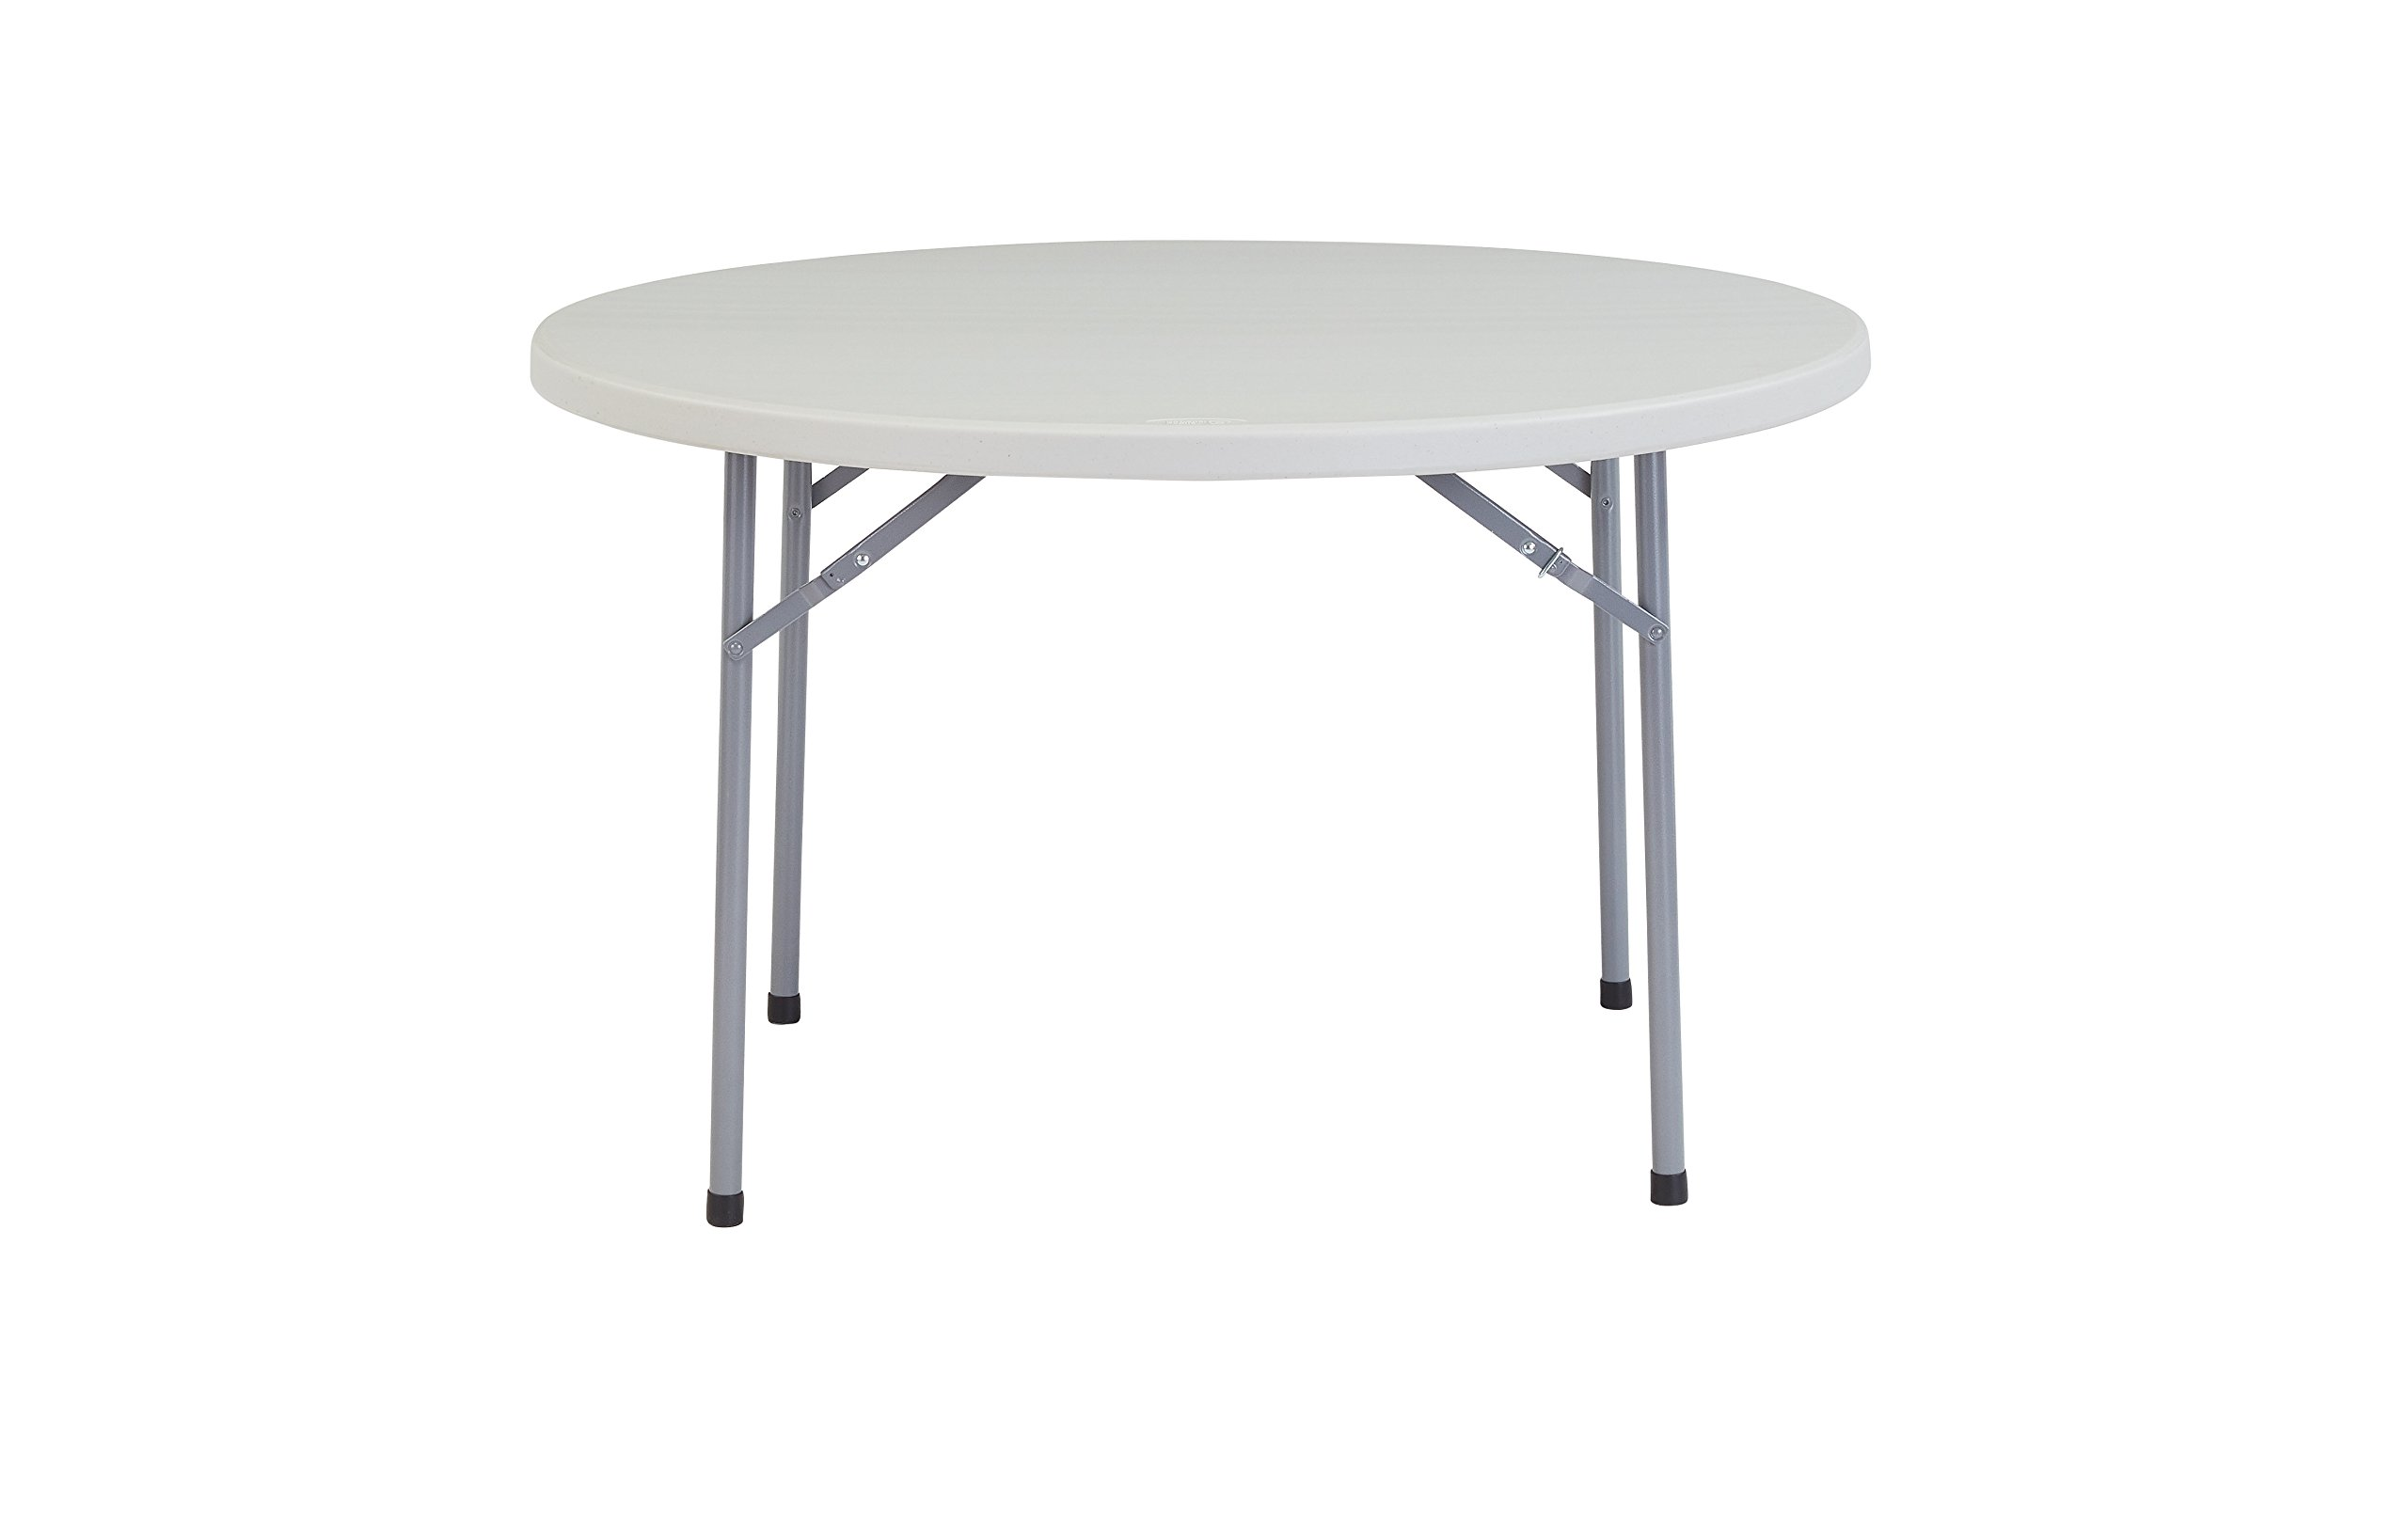 National Public Seating 48'' Heavy Duty Round Folding Table, Speckled Grey, 1000 lbs Capacity by National Public Seating